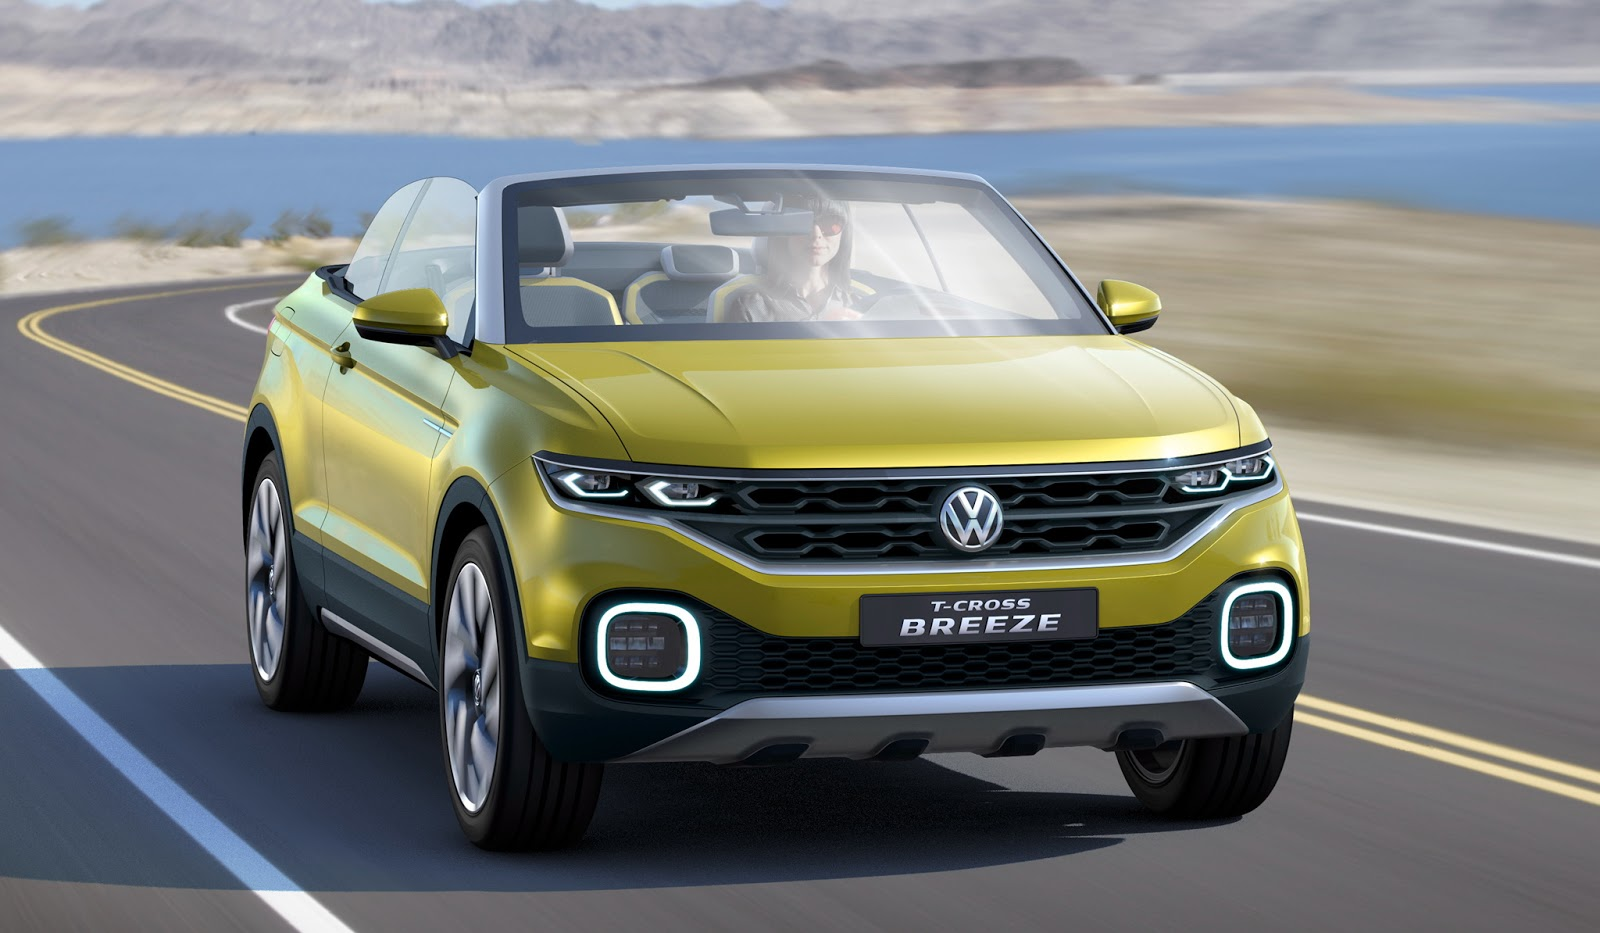 New VW T-Cross Breeze